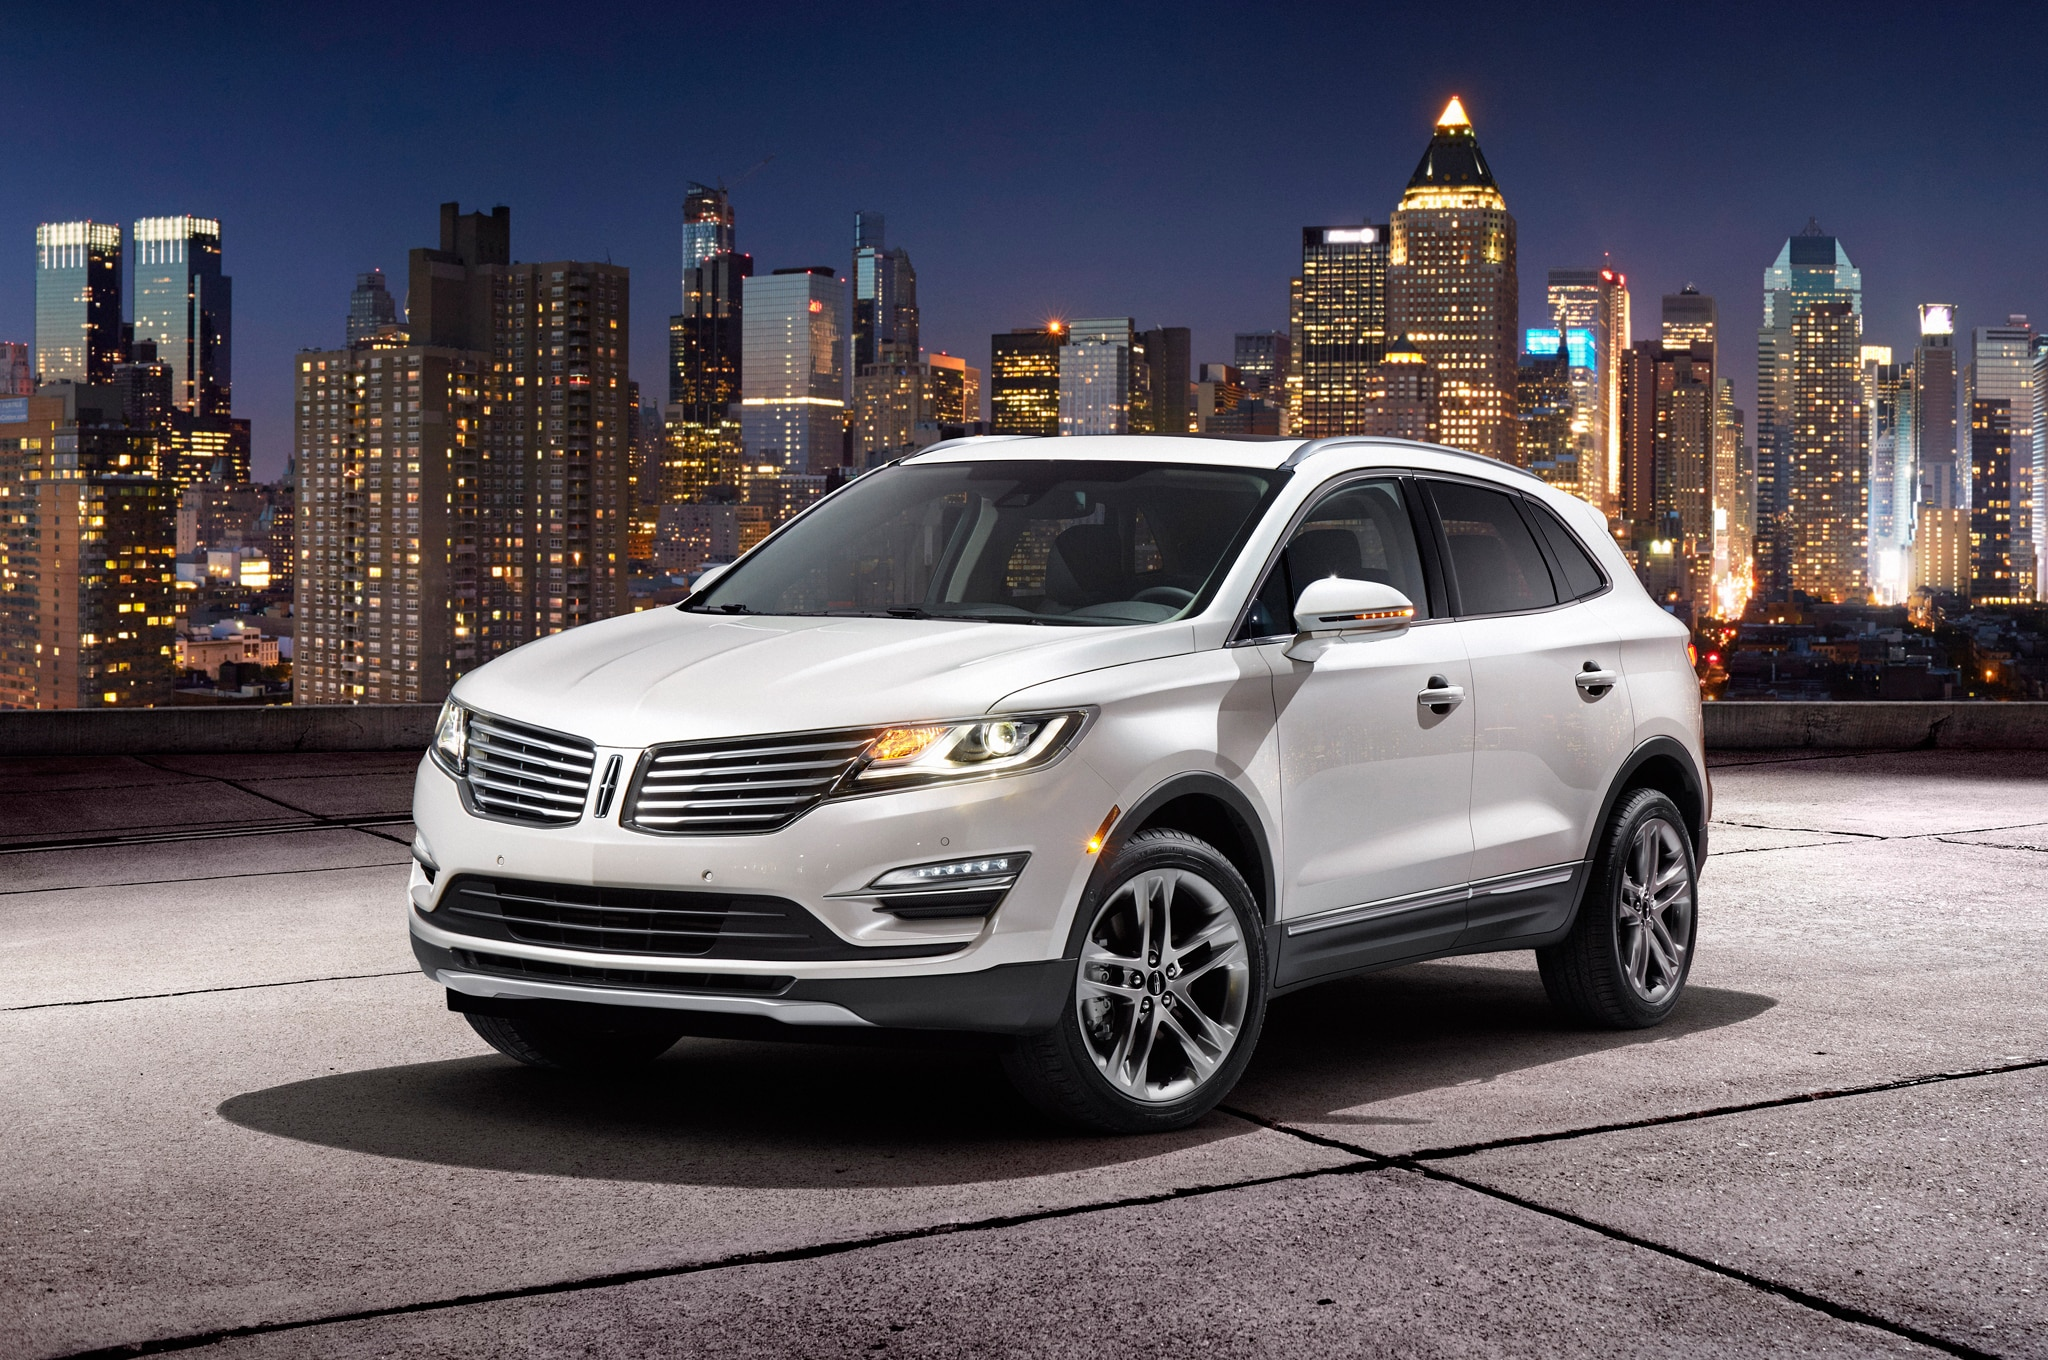 2015 Lincoln MKC Front Three Quarters 021